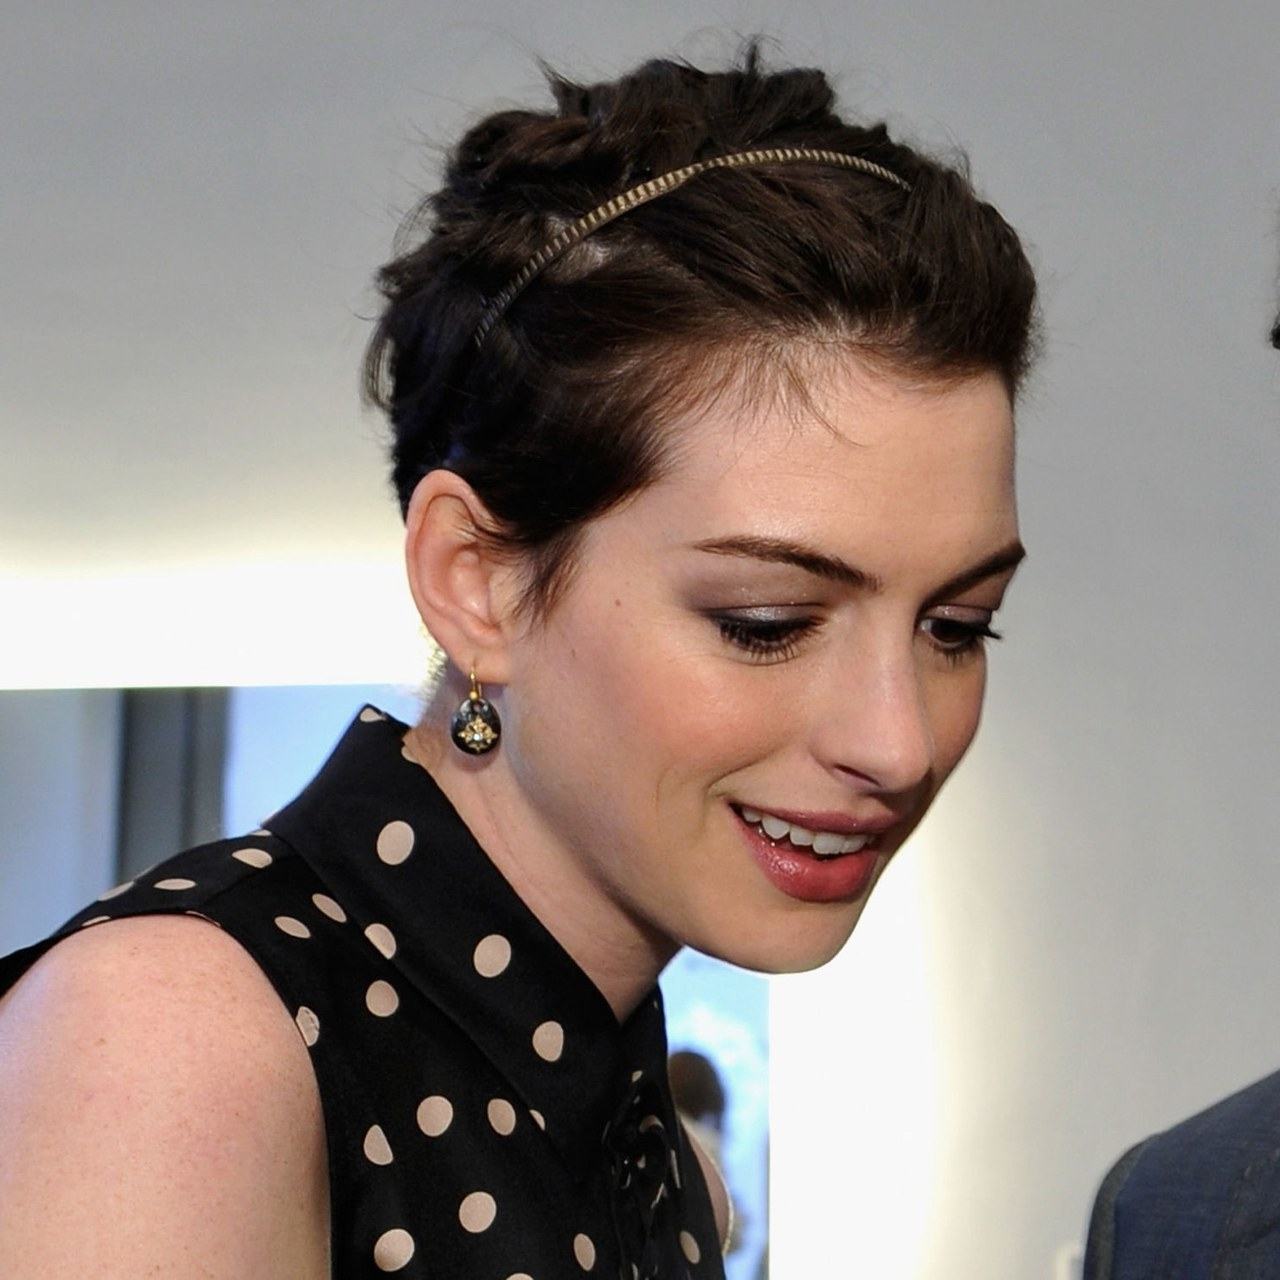 Anne Hathaway Uses A Headband To Create A Cute Hairstyle For Her With Anne Hathaway Short Haircuts (View 15 of 25)